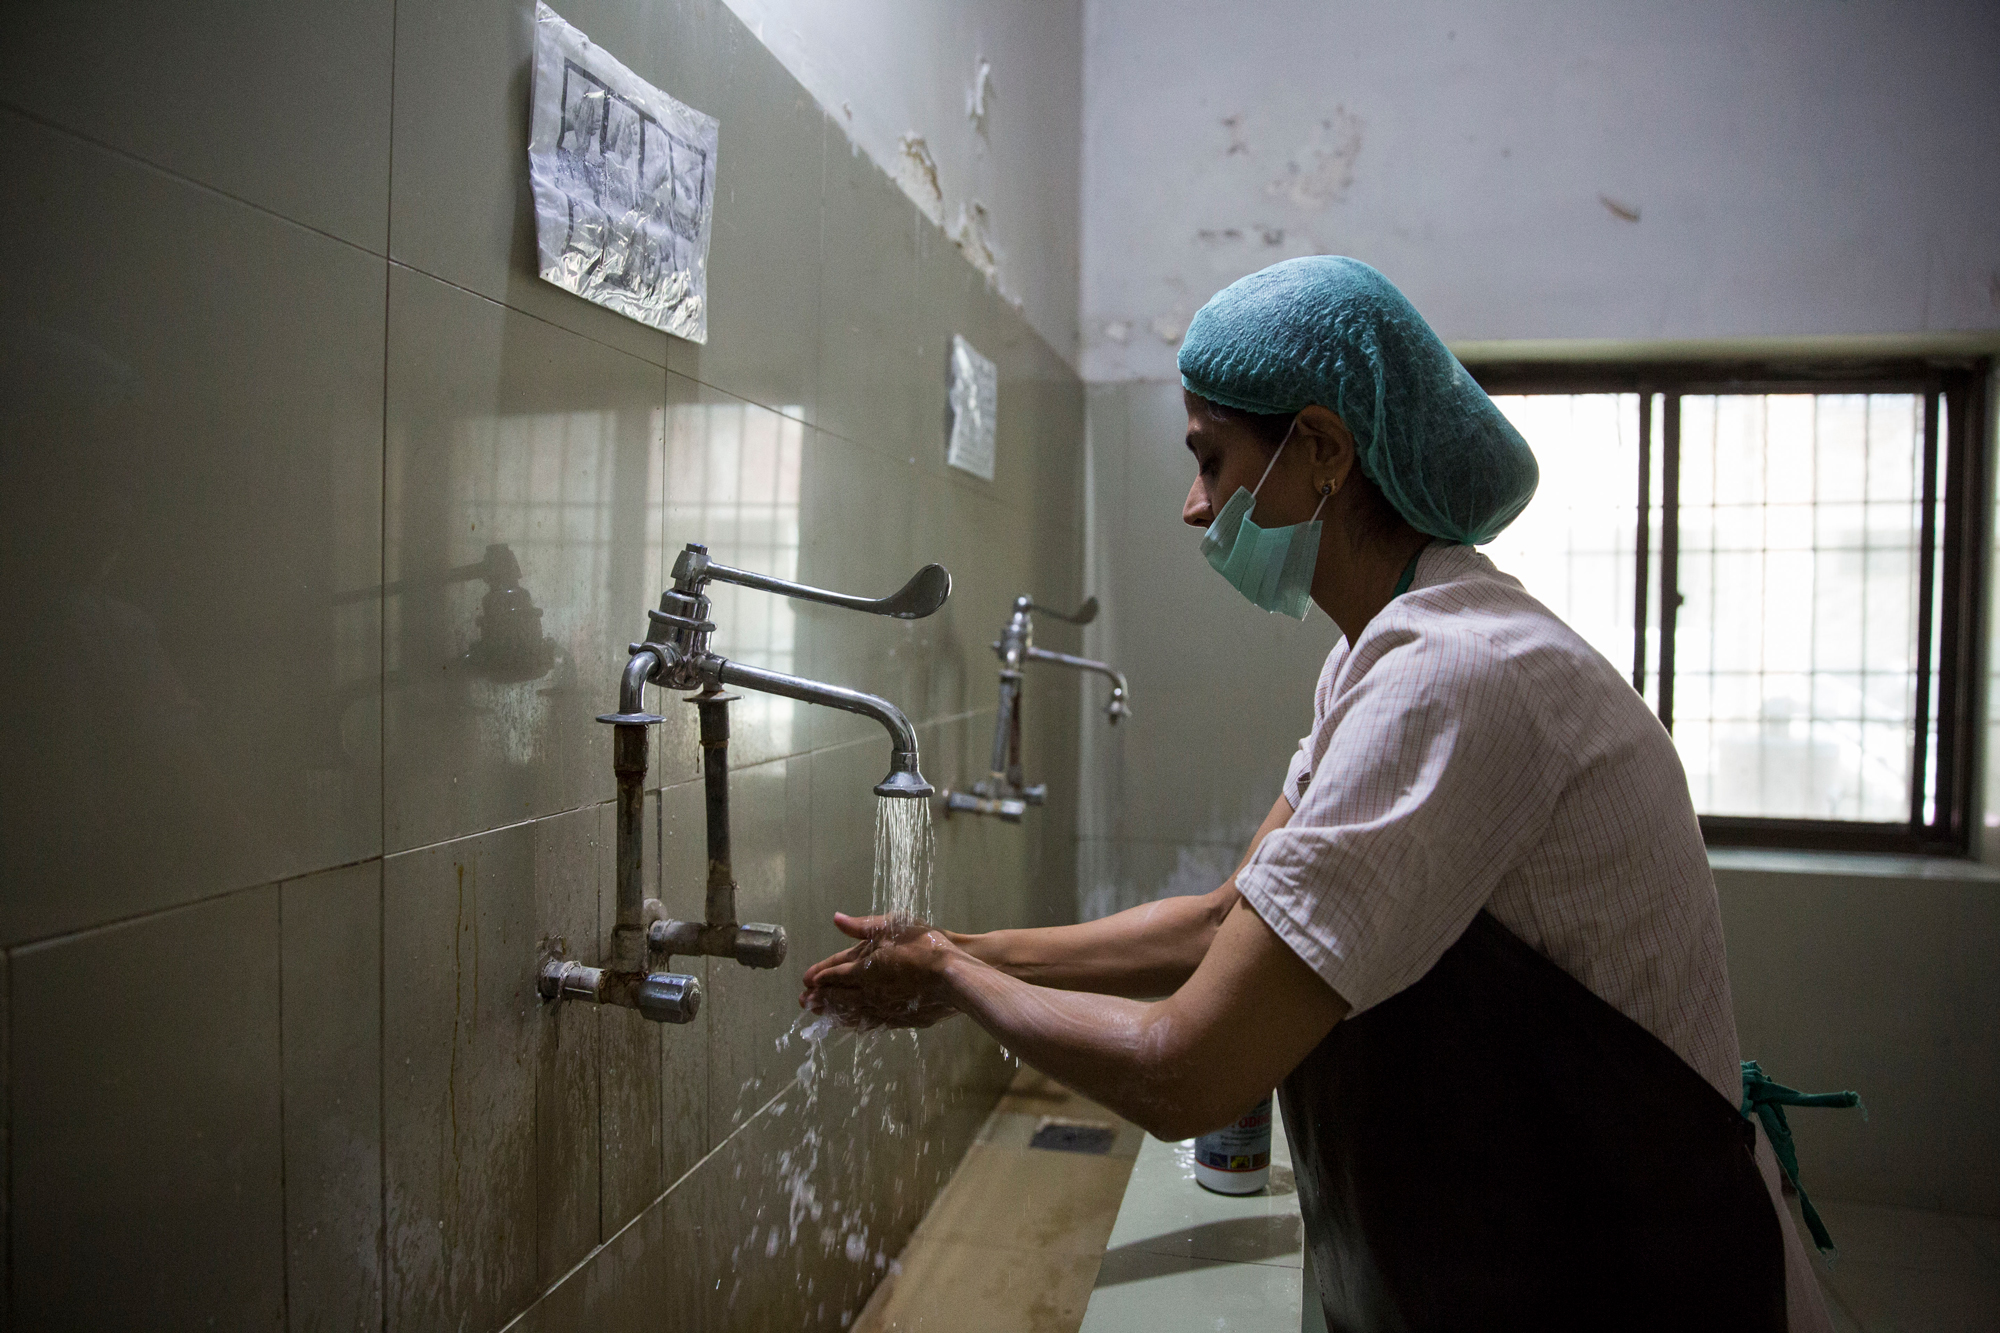 Dr Sadia Khan washes her hands before entering the operation theatre at Holy Family Hospital, Rawalpindi. Saiyna Bashir © Wellcome Trust